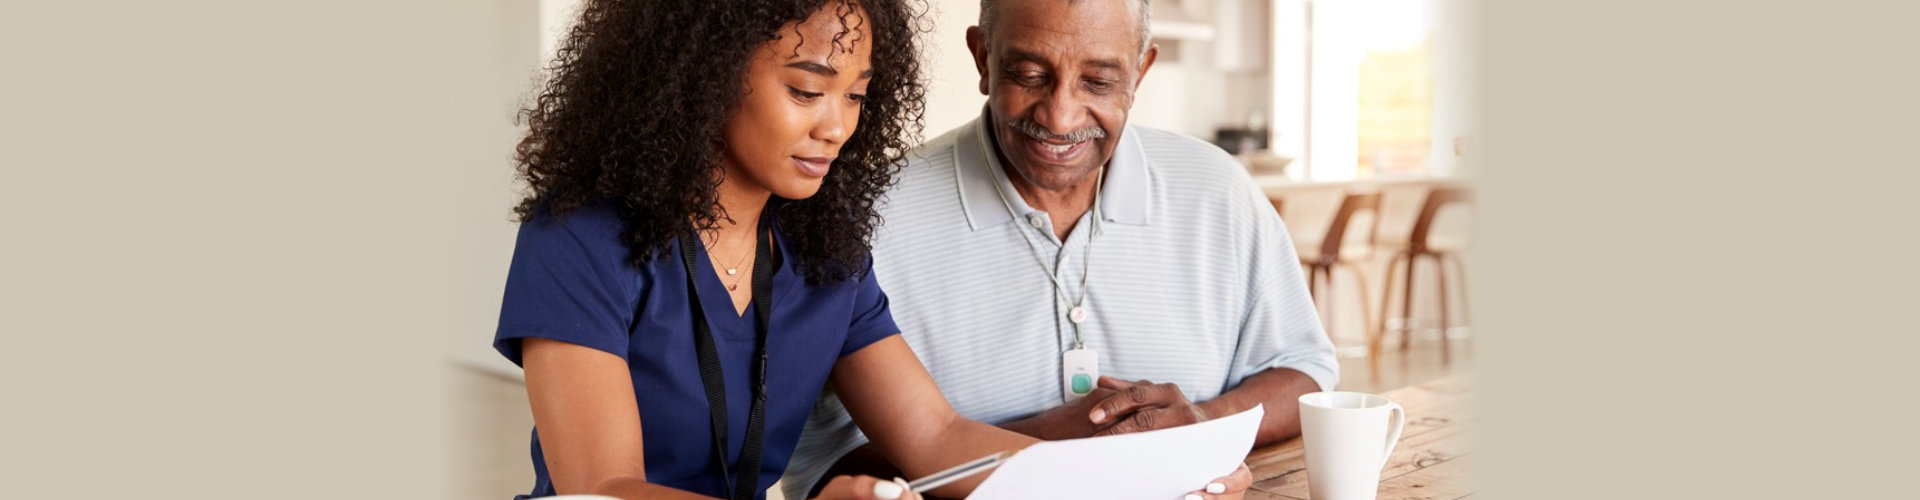 Female healthcare worker checking test results with a senior men during a home health visit